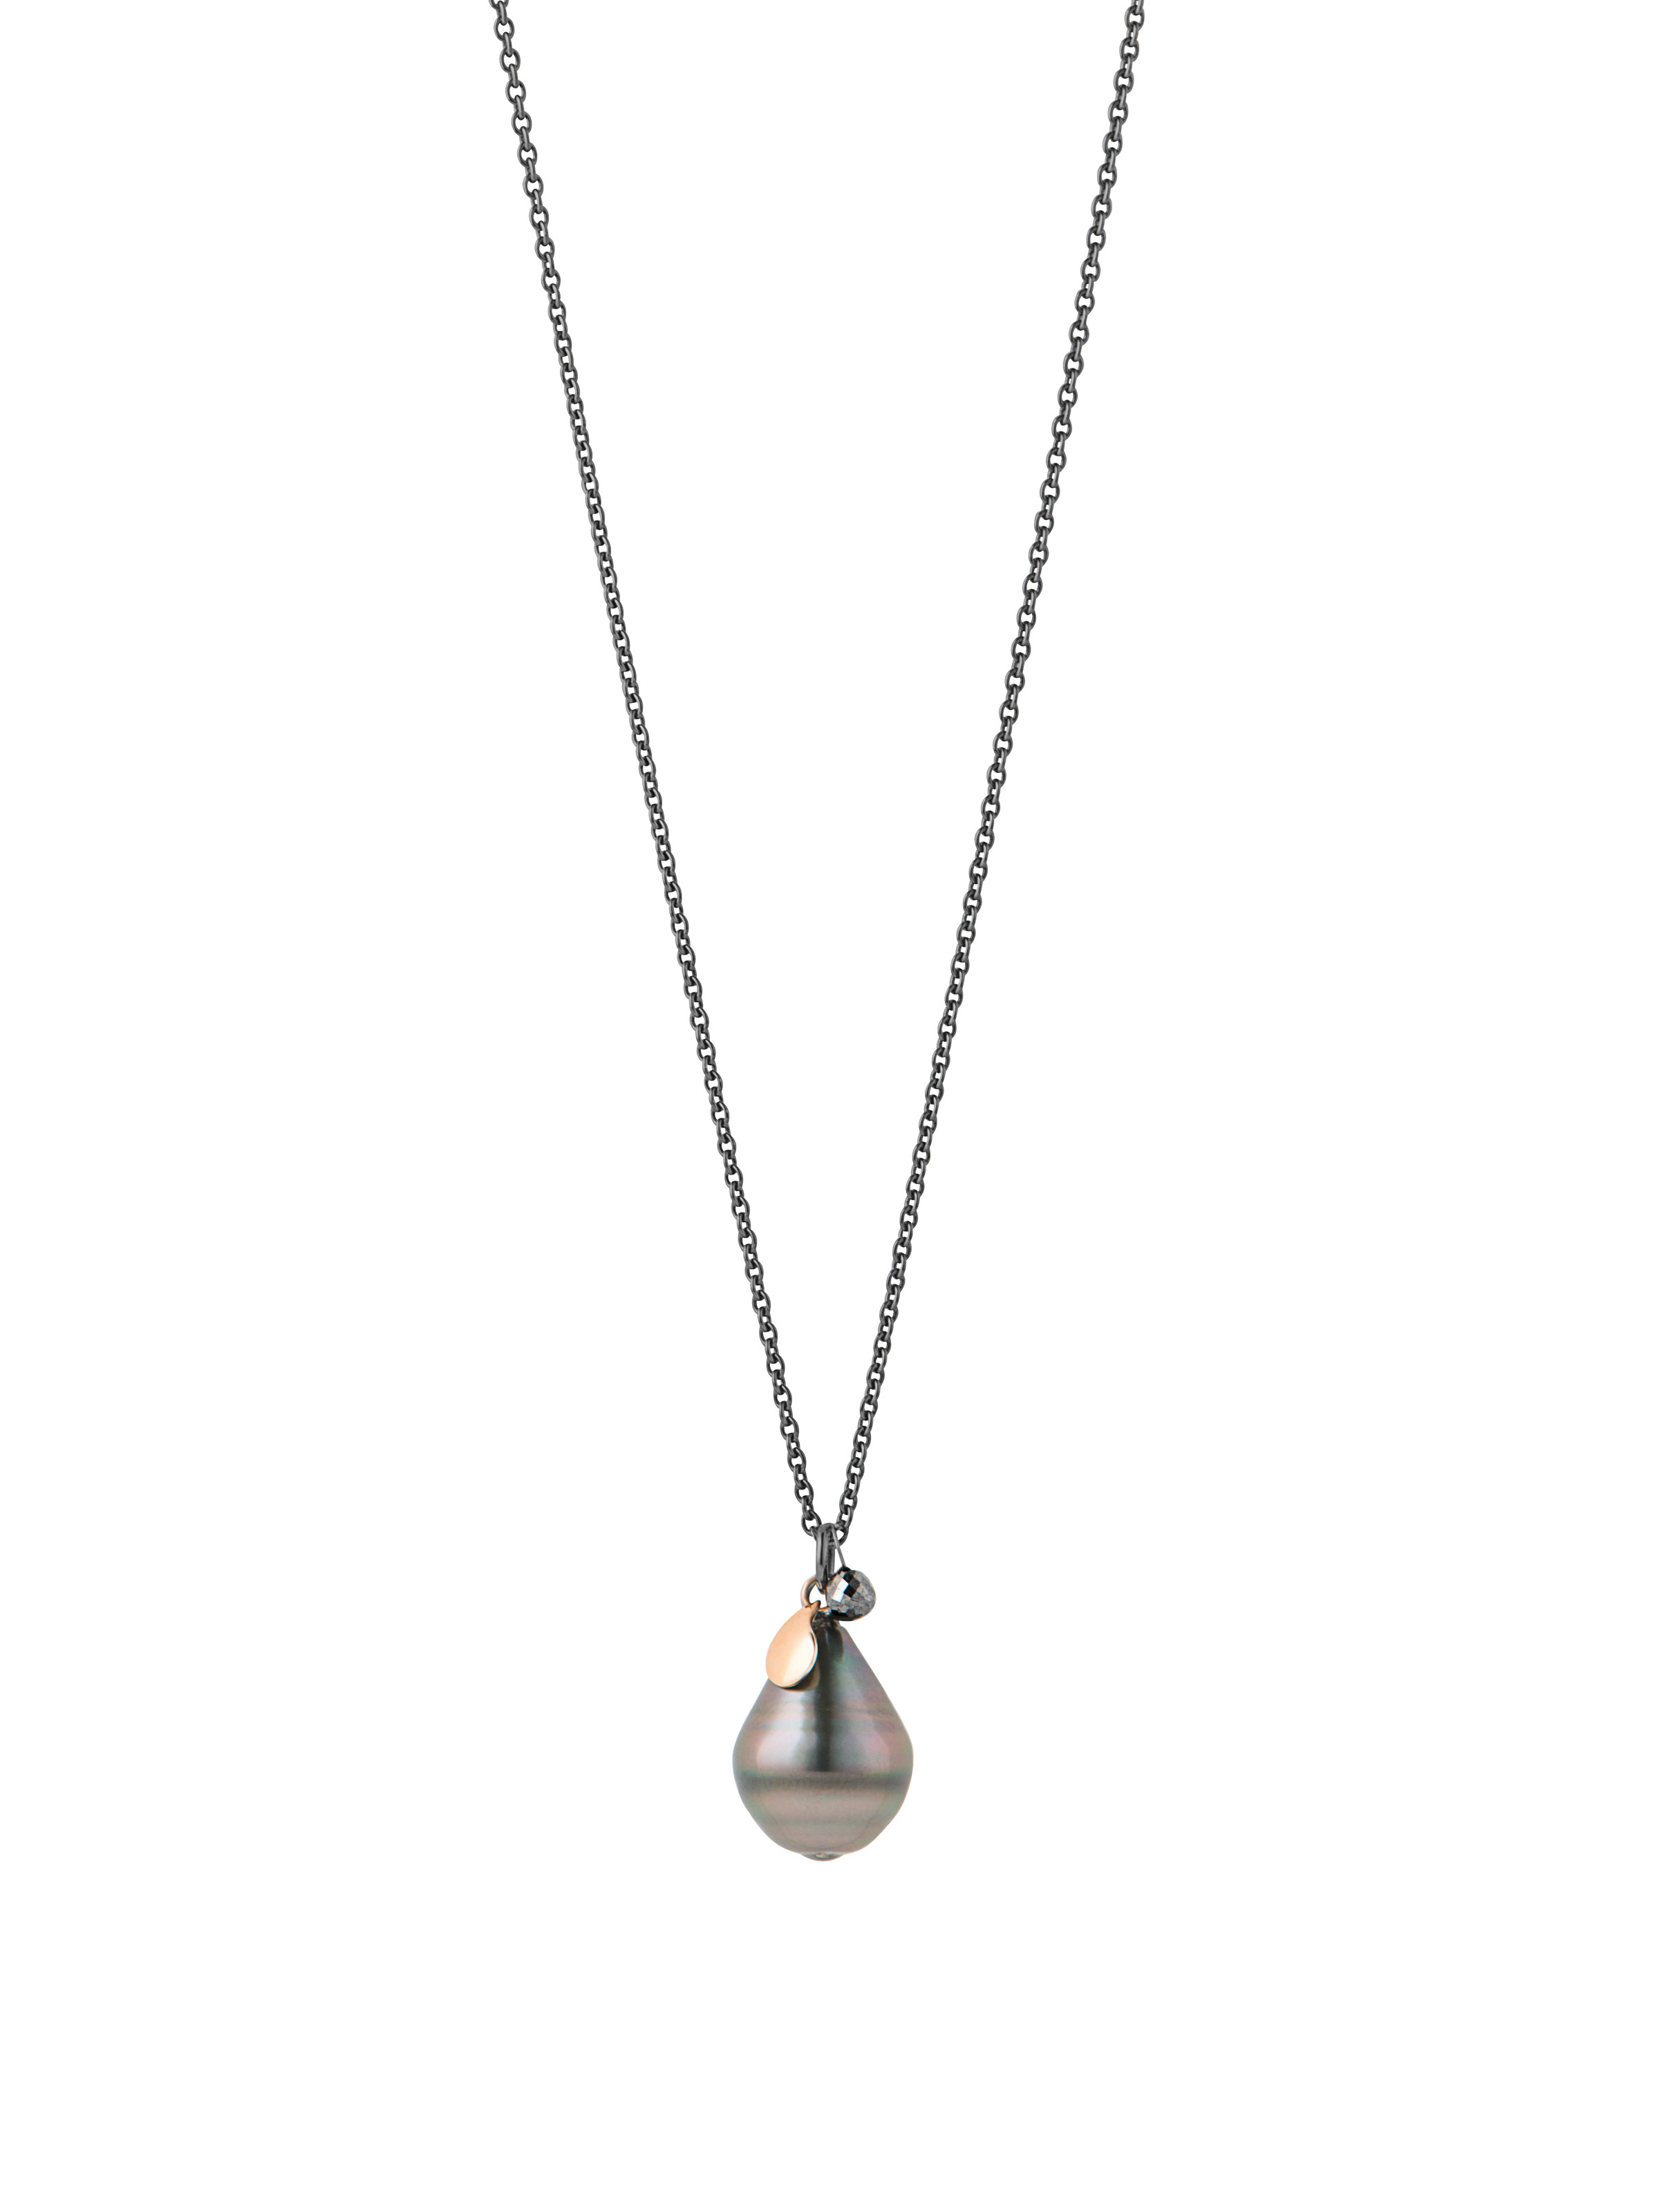 Tidedrops necklace